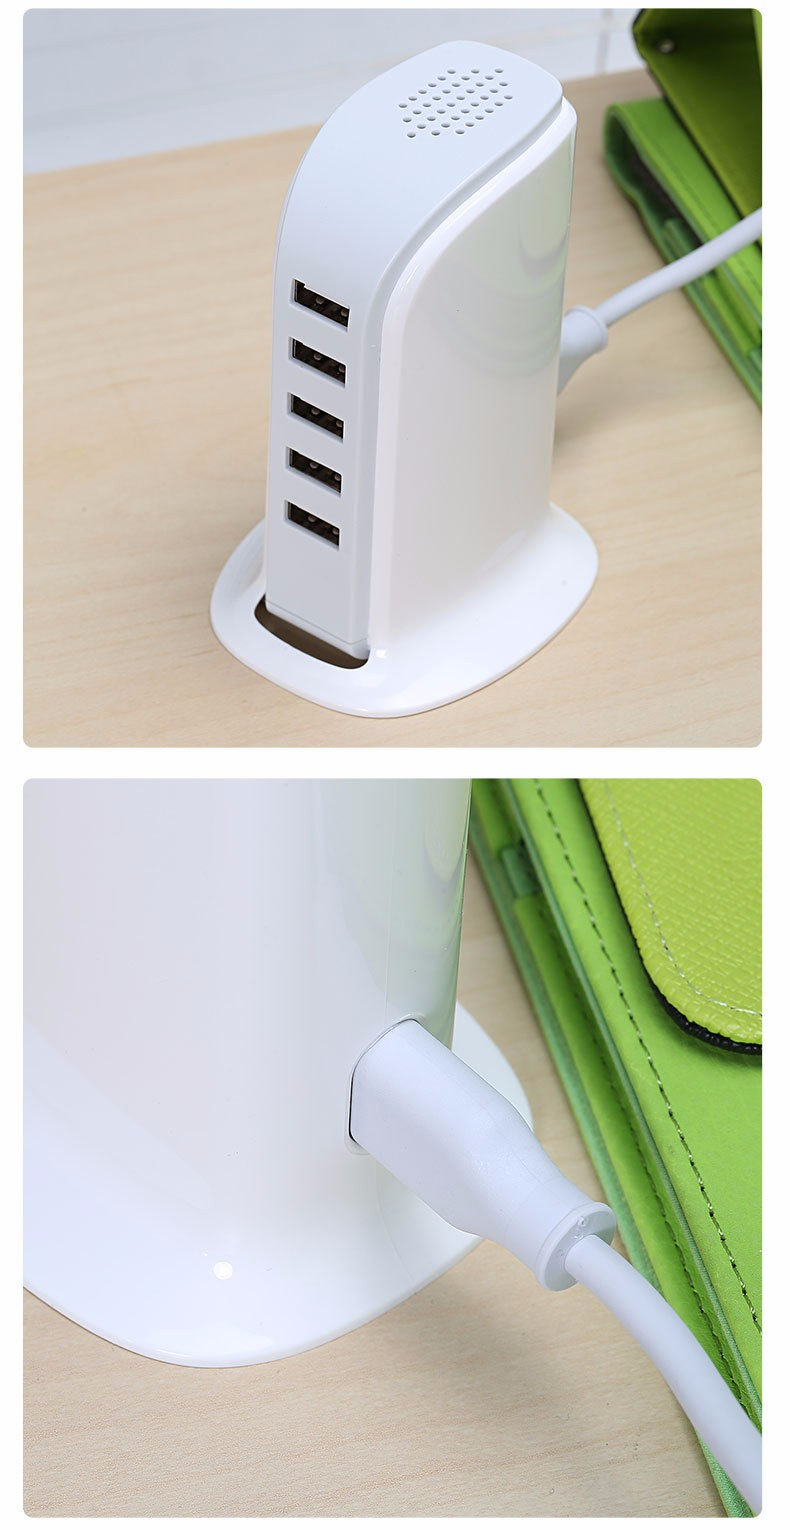 6 USB FAST CHARGER ADAPTER (8)